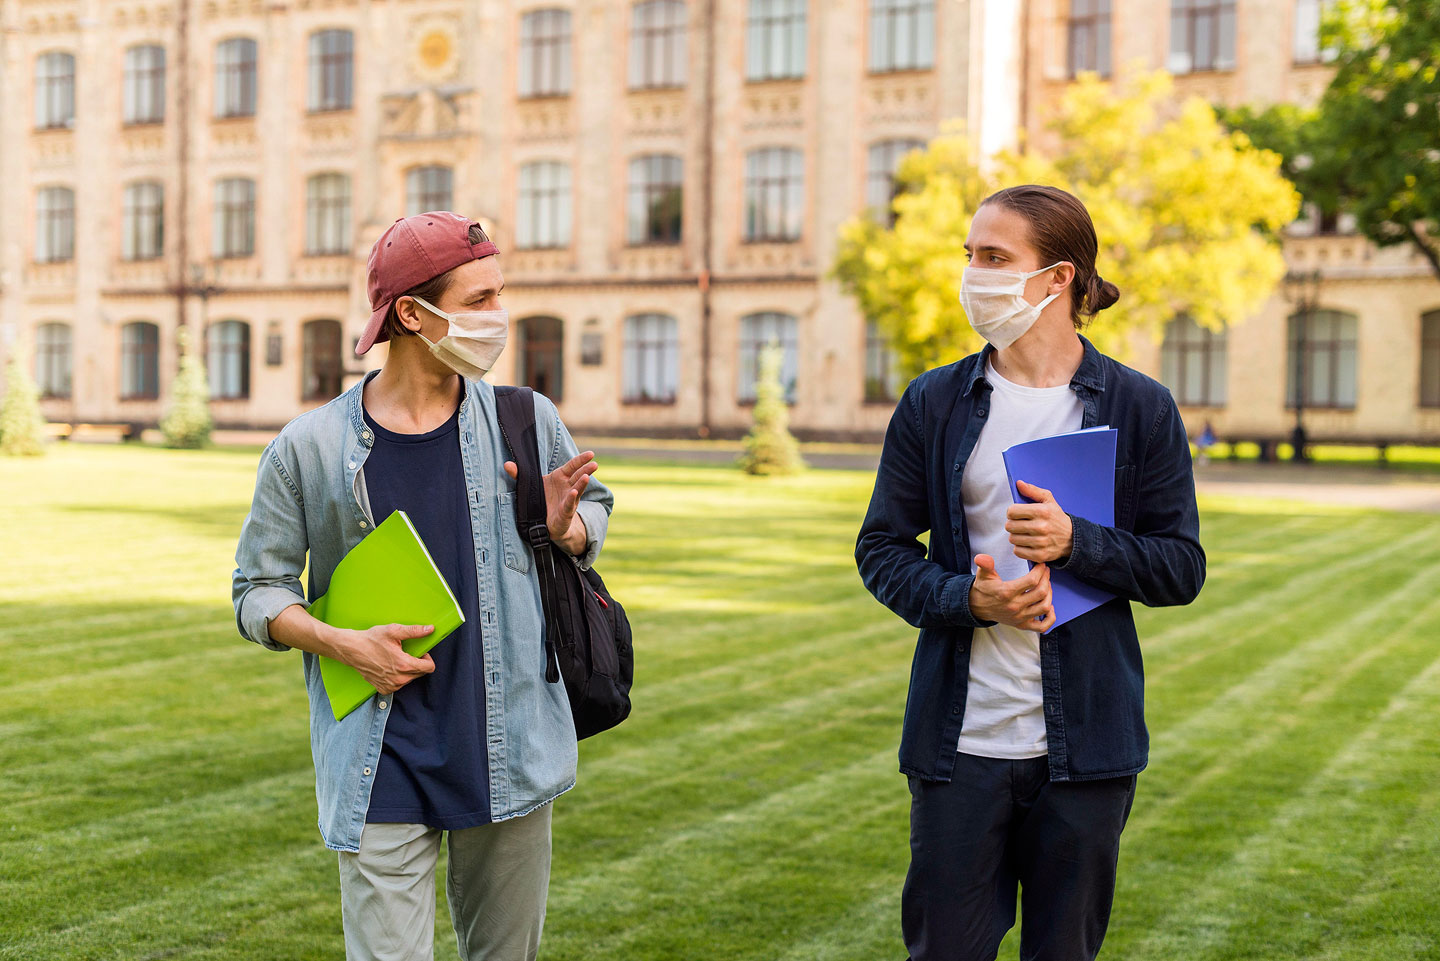 Male students socializing on campus while wearing masks